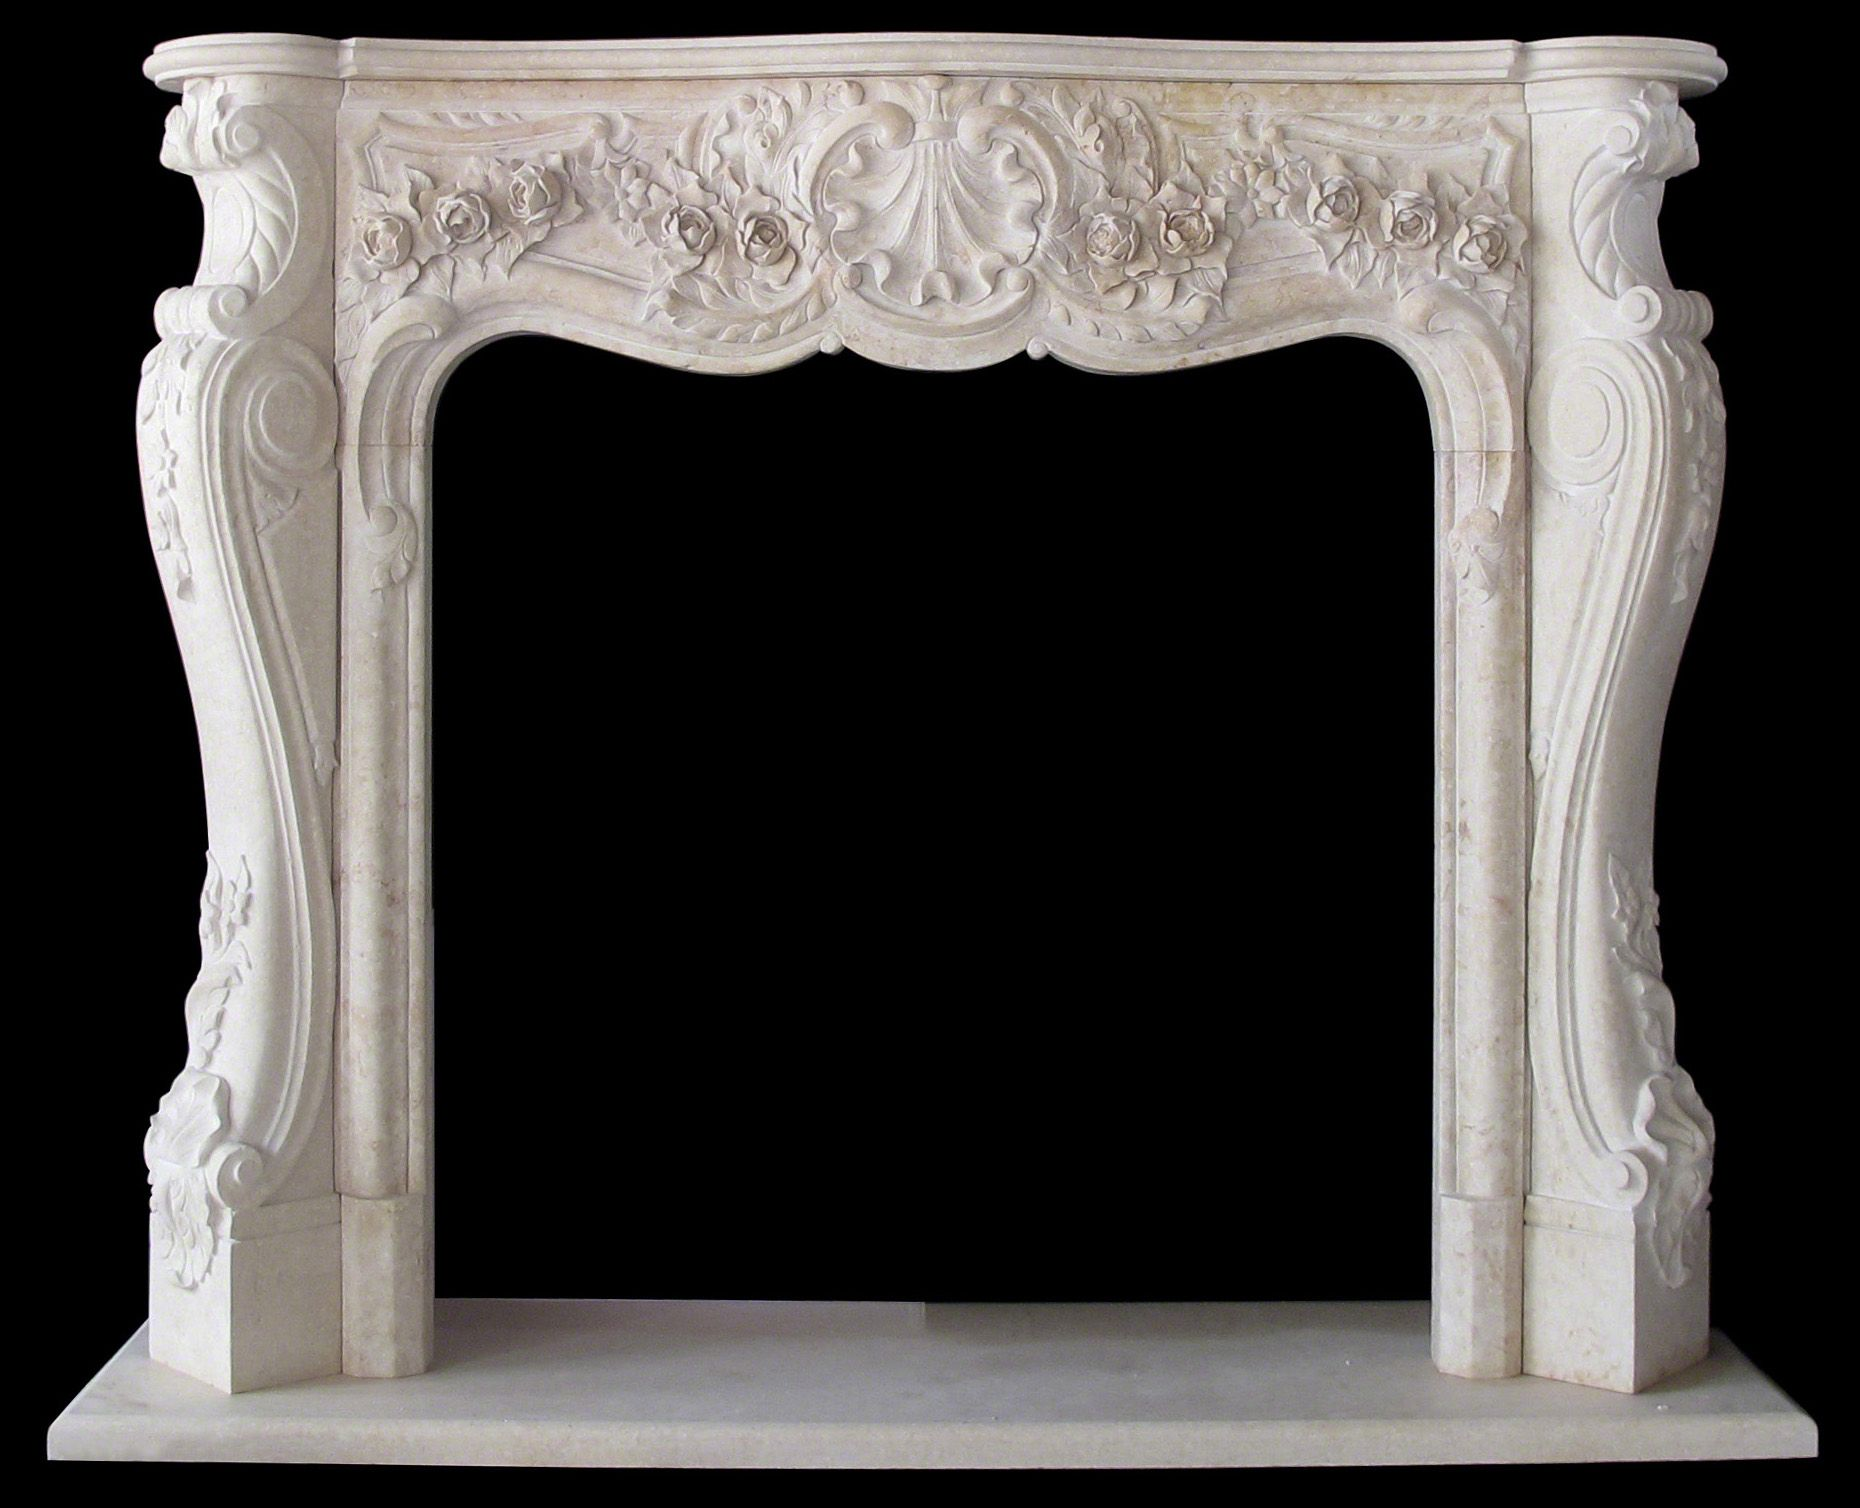 Marble Fireplace Surround Sale Travertine Italian Arabesco